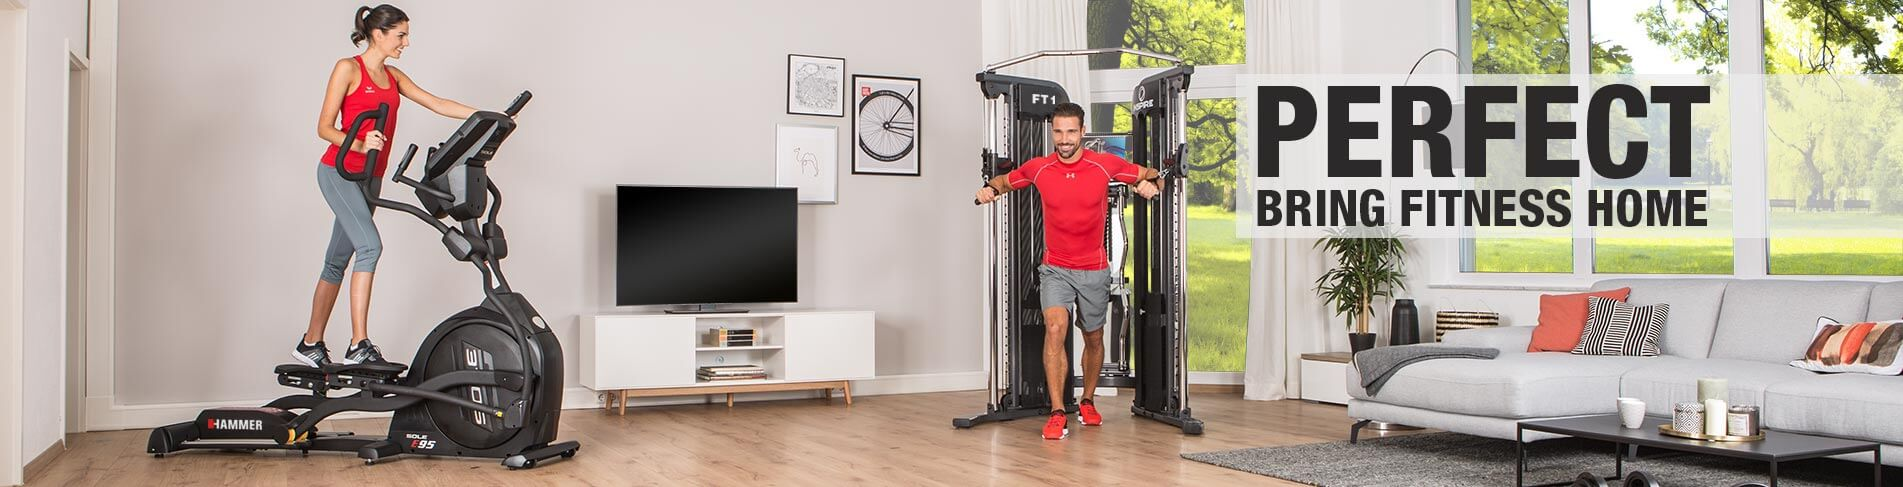 simply excercise at home - HAMMER